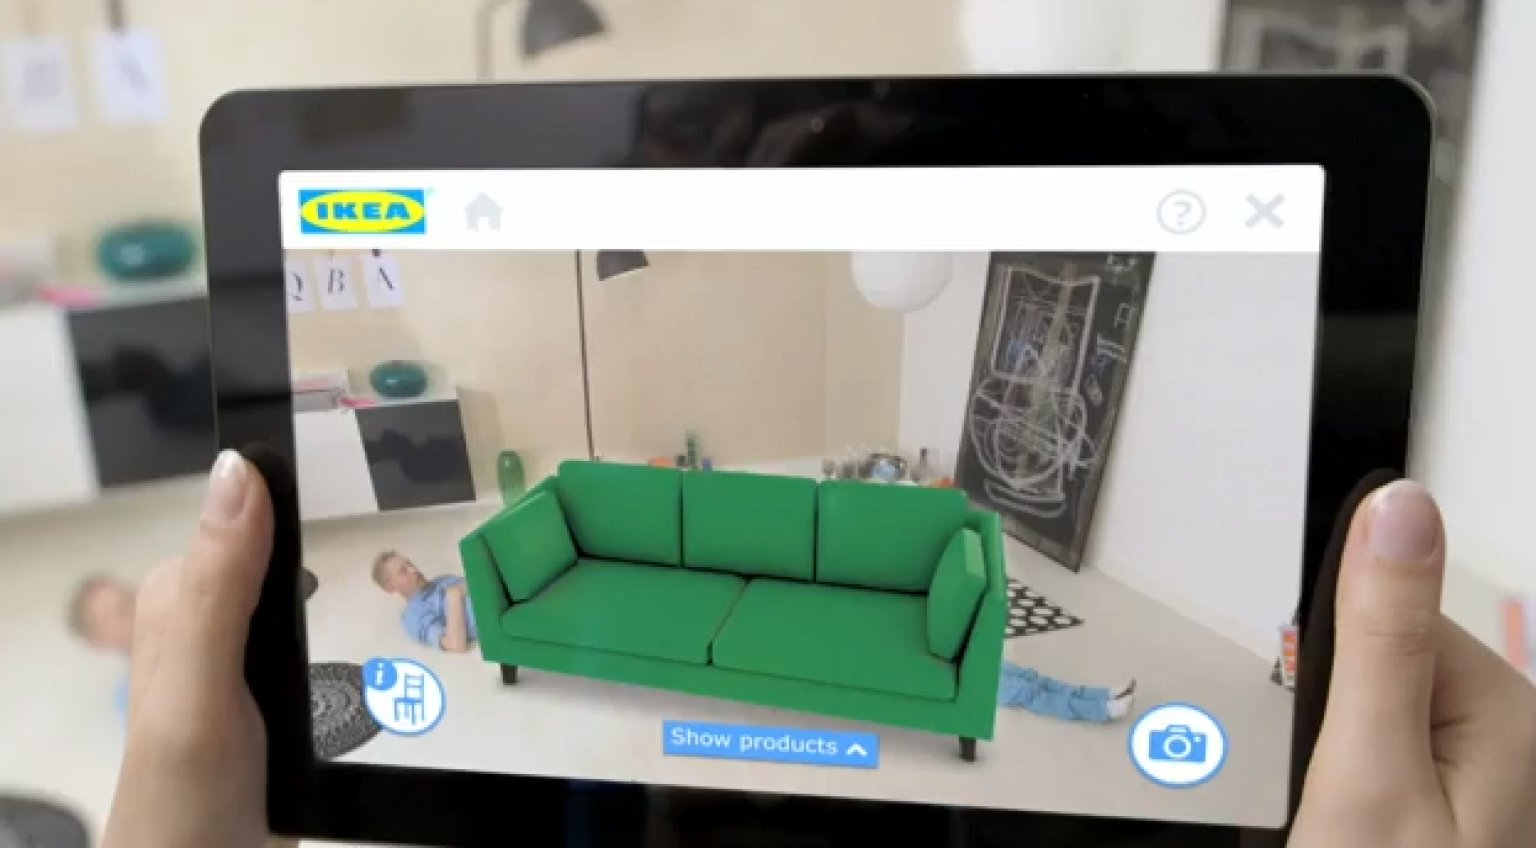 ikea 39 s new app lets you place virtual furniture in your home before you buy it video huffpost uk. Black Bedroom Furniture Sets. Home Design Ideas